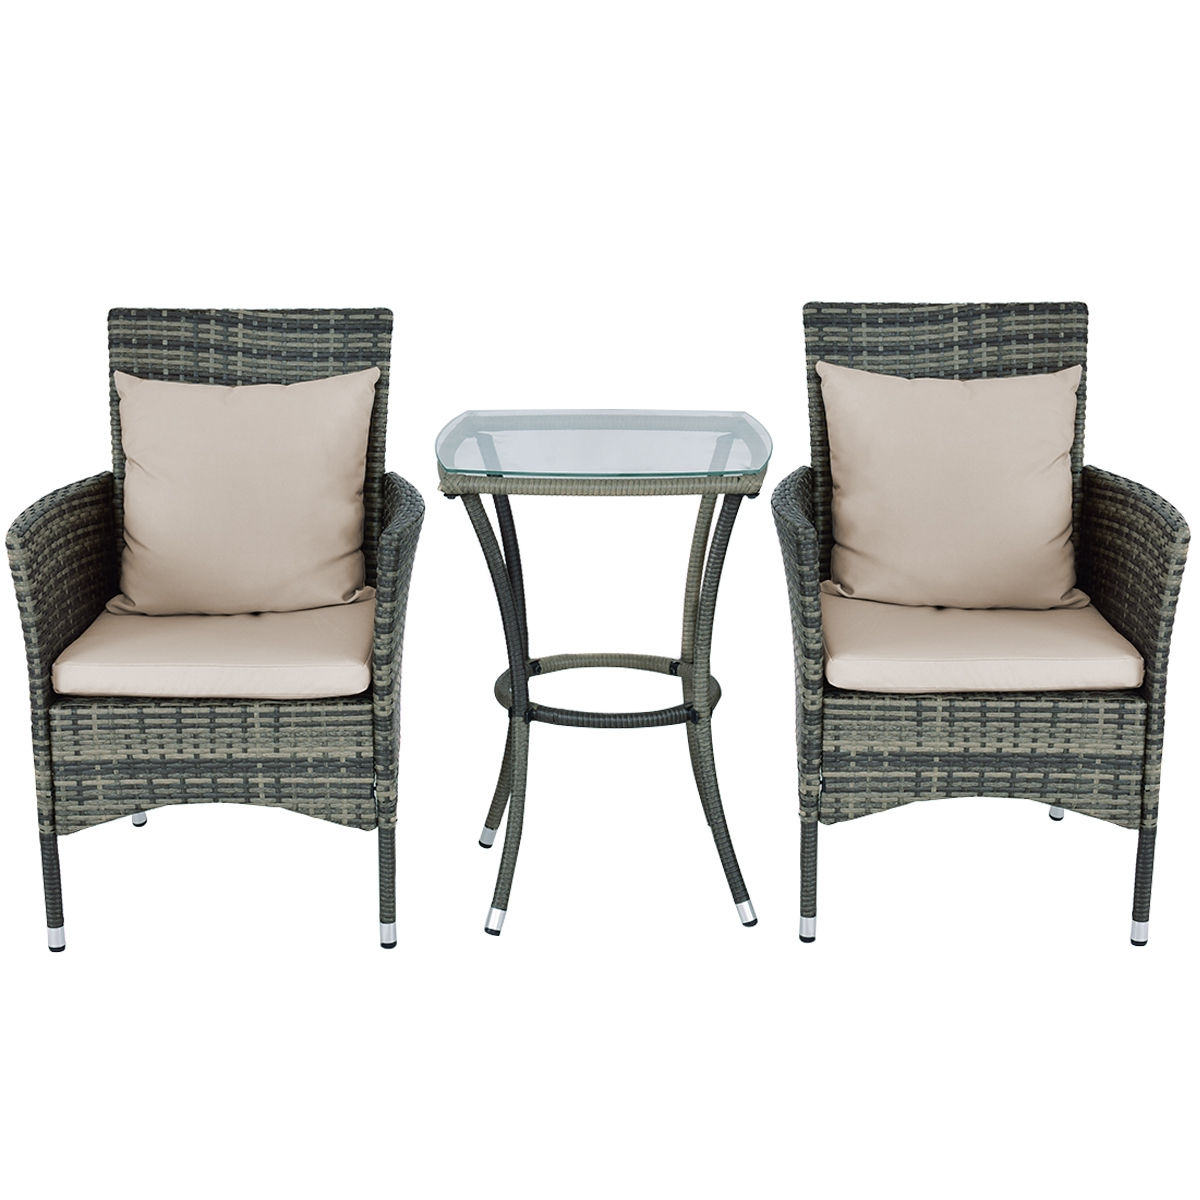 Rattan Chairs 3 Pcs Patio Rattan Chairs And Table Set With Cushions